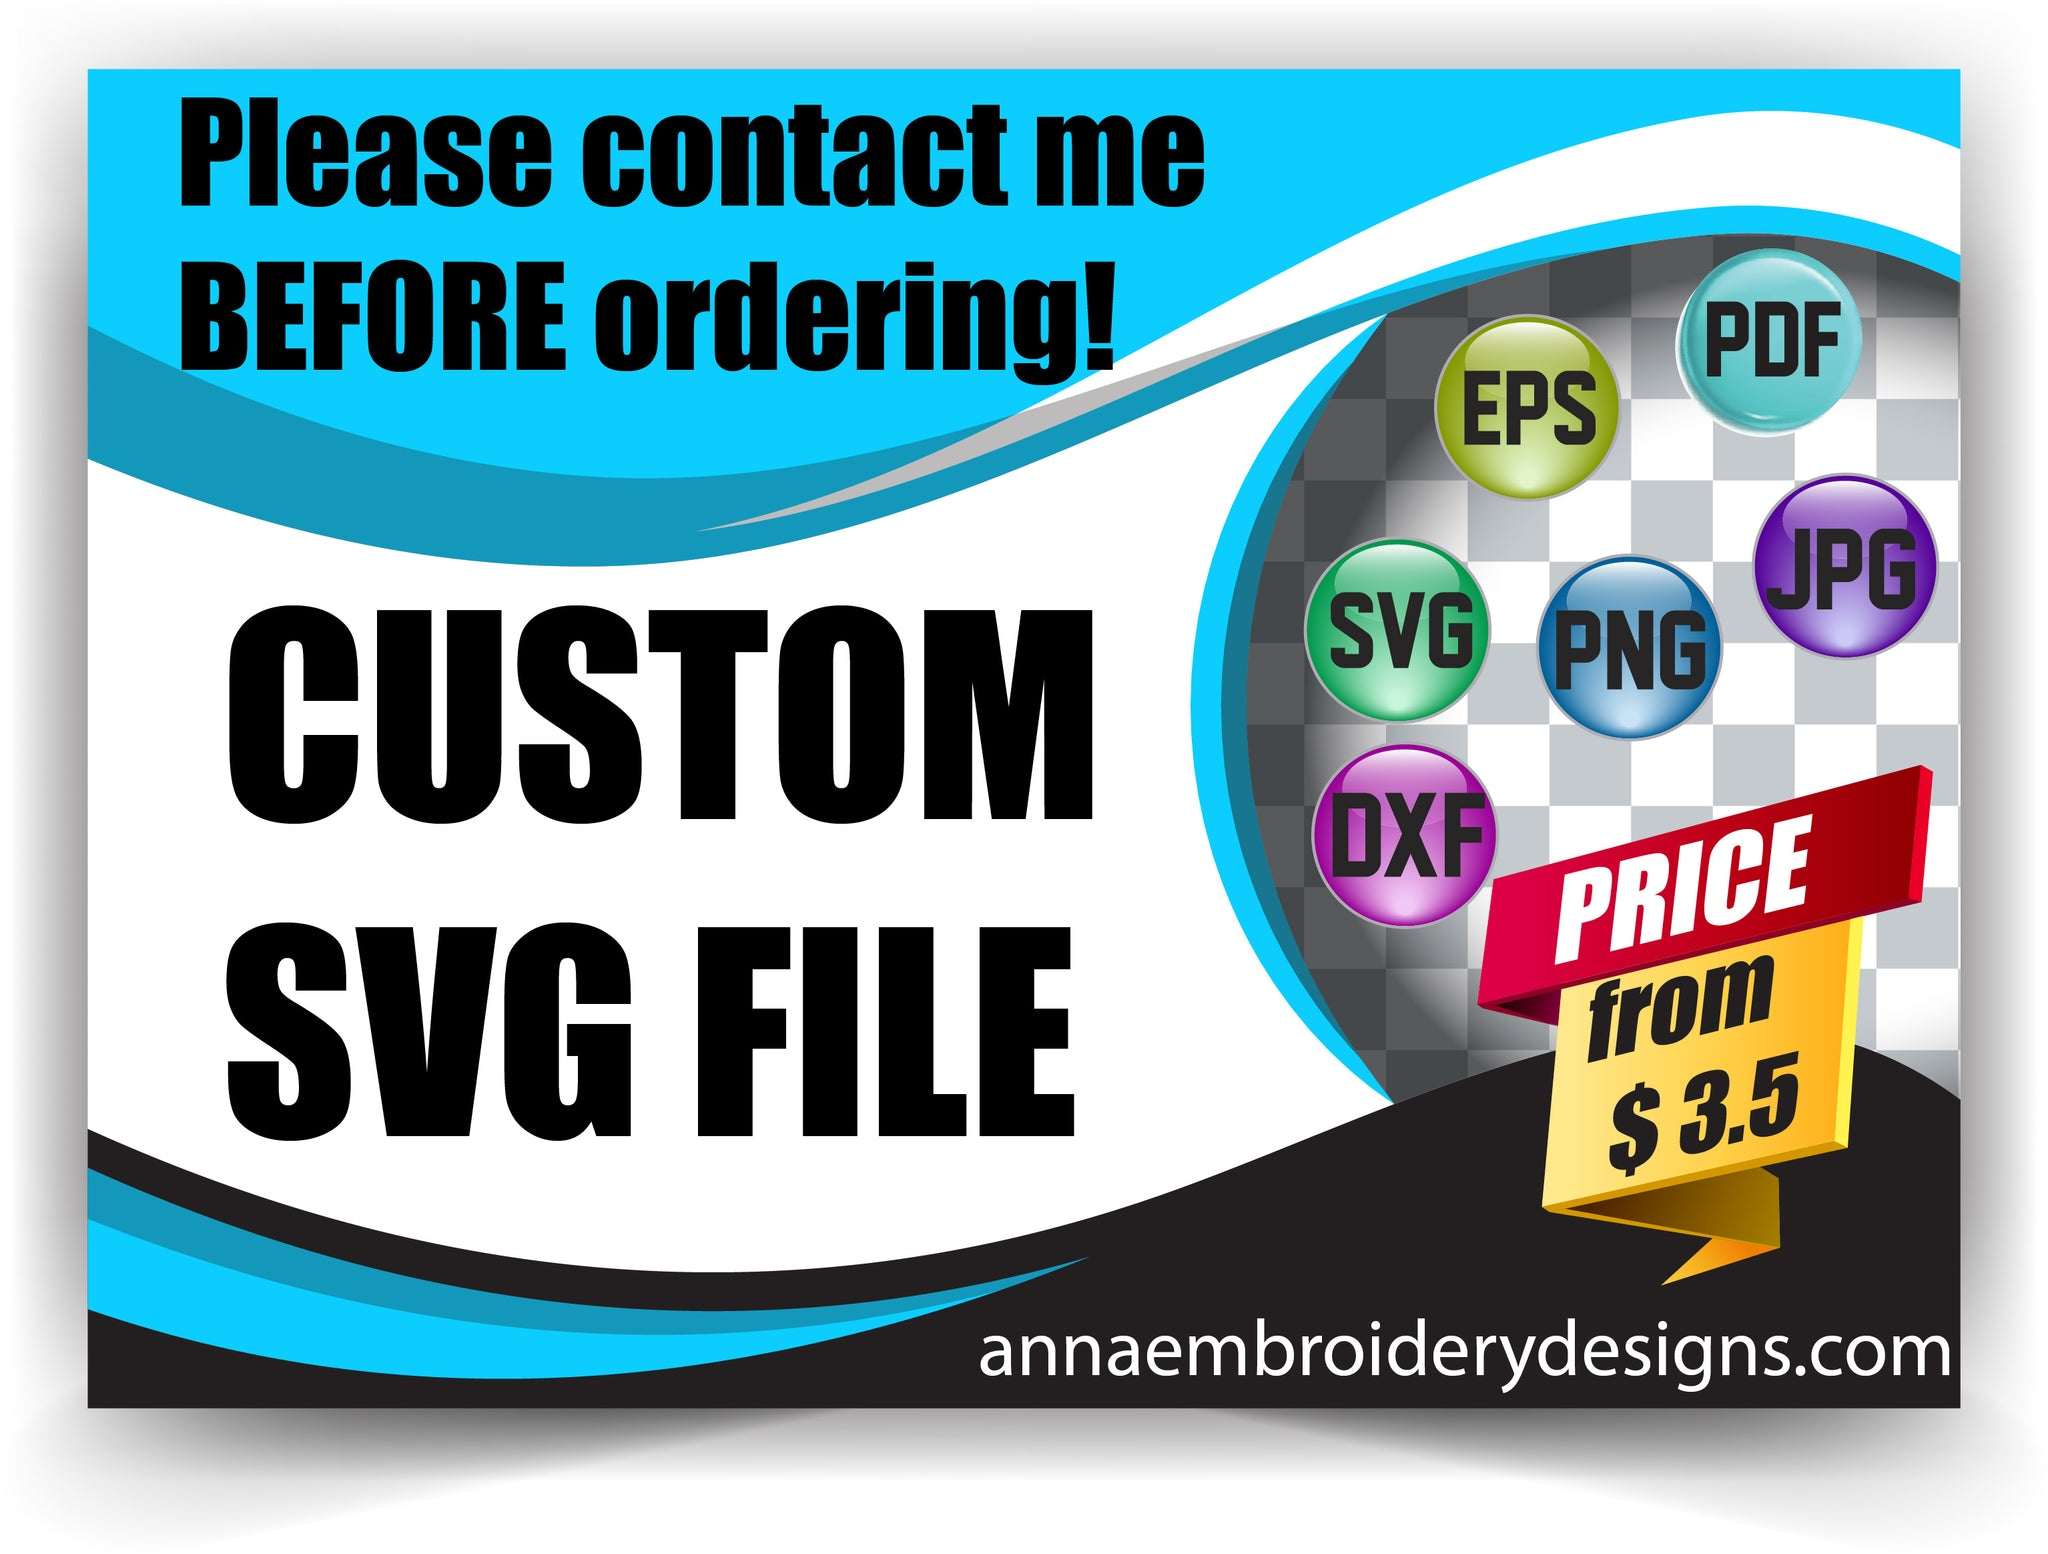 Custom Orders – Anna Embroidery Designs